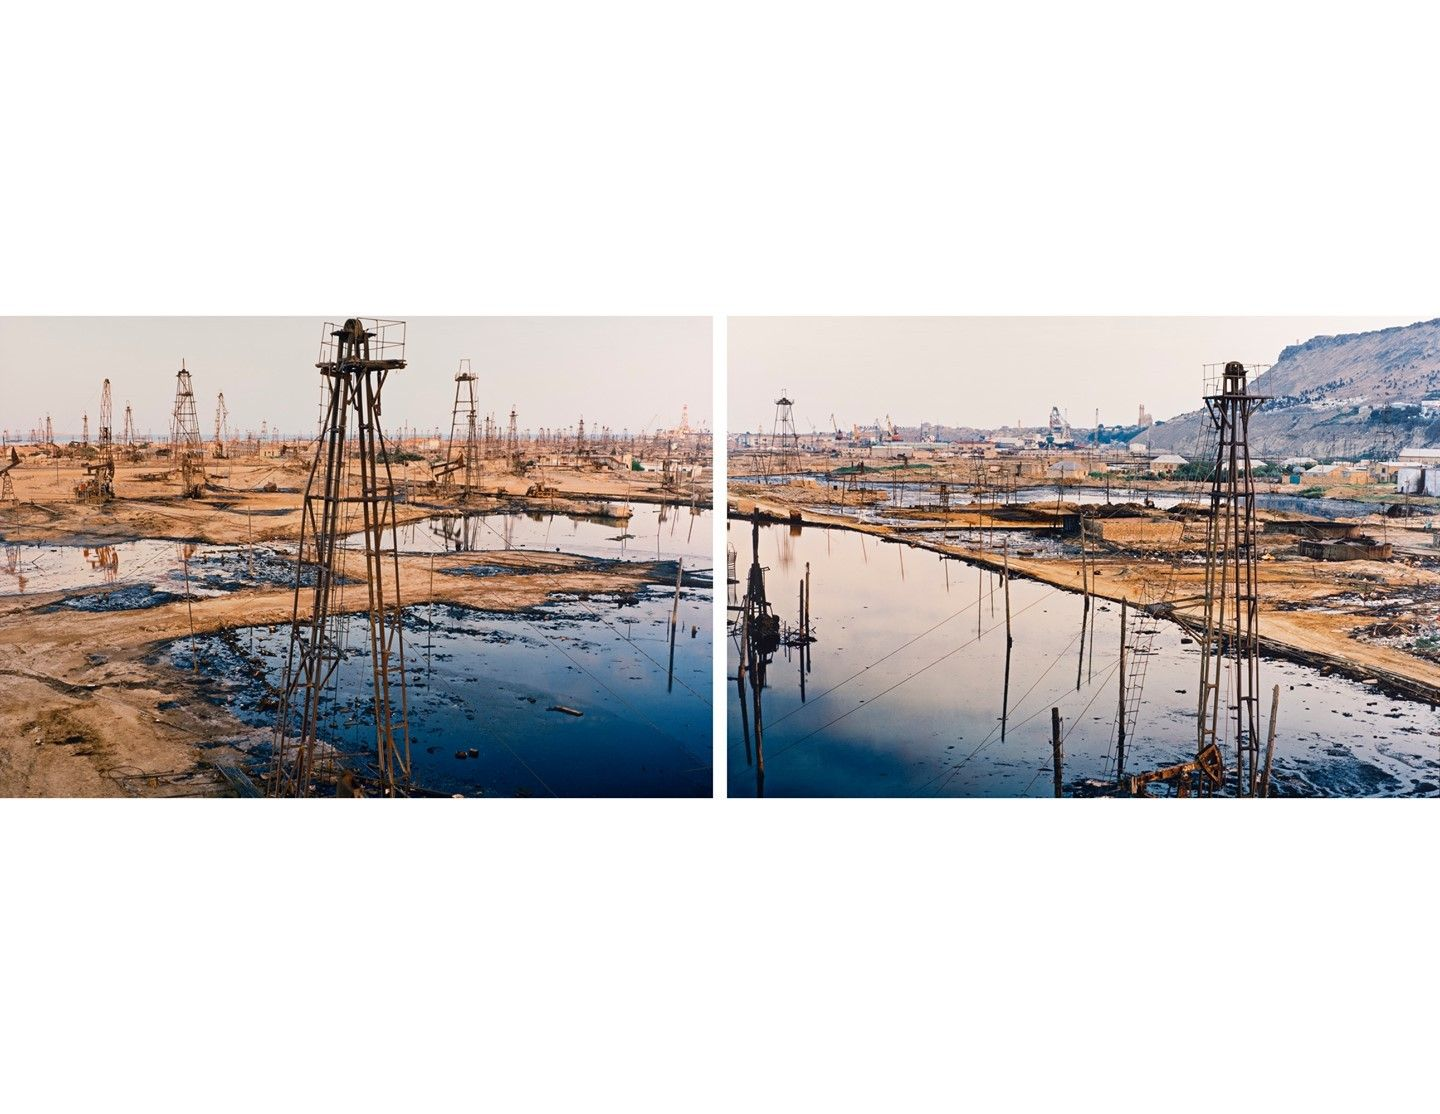 Water Wednesday Edward Burtynsky Is A Canadian Photographer And Artist Known For His Large Format Photographs Of Industrial La Landscape Art Museum Instagram